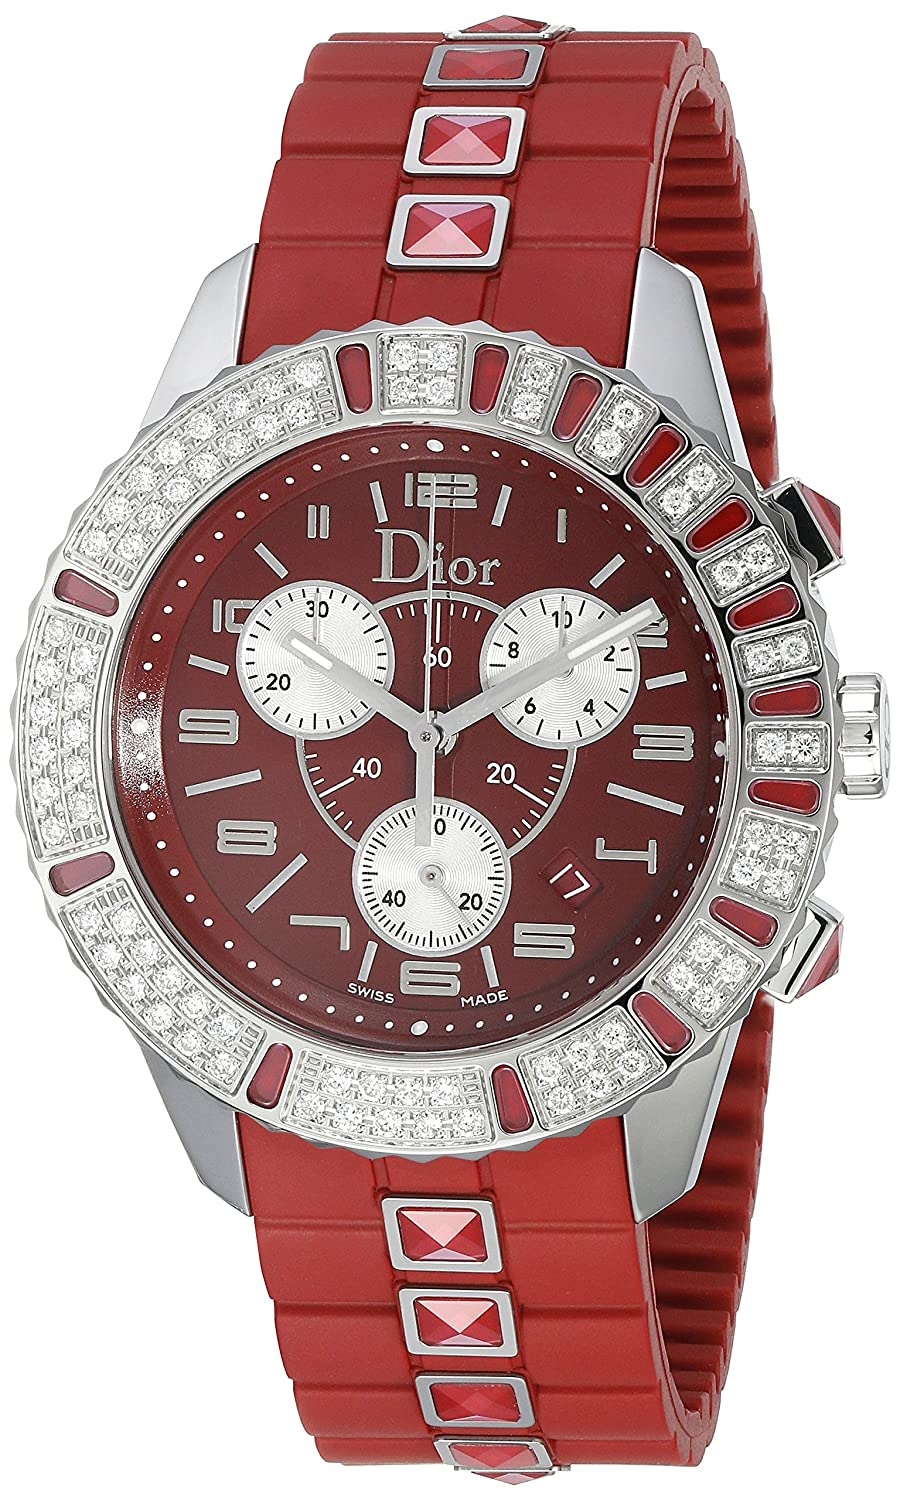 en maroon tissot gb shop watches quartz couturier lady